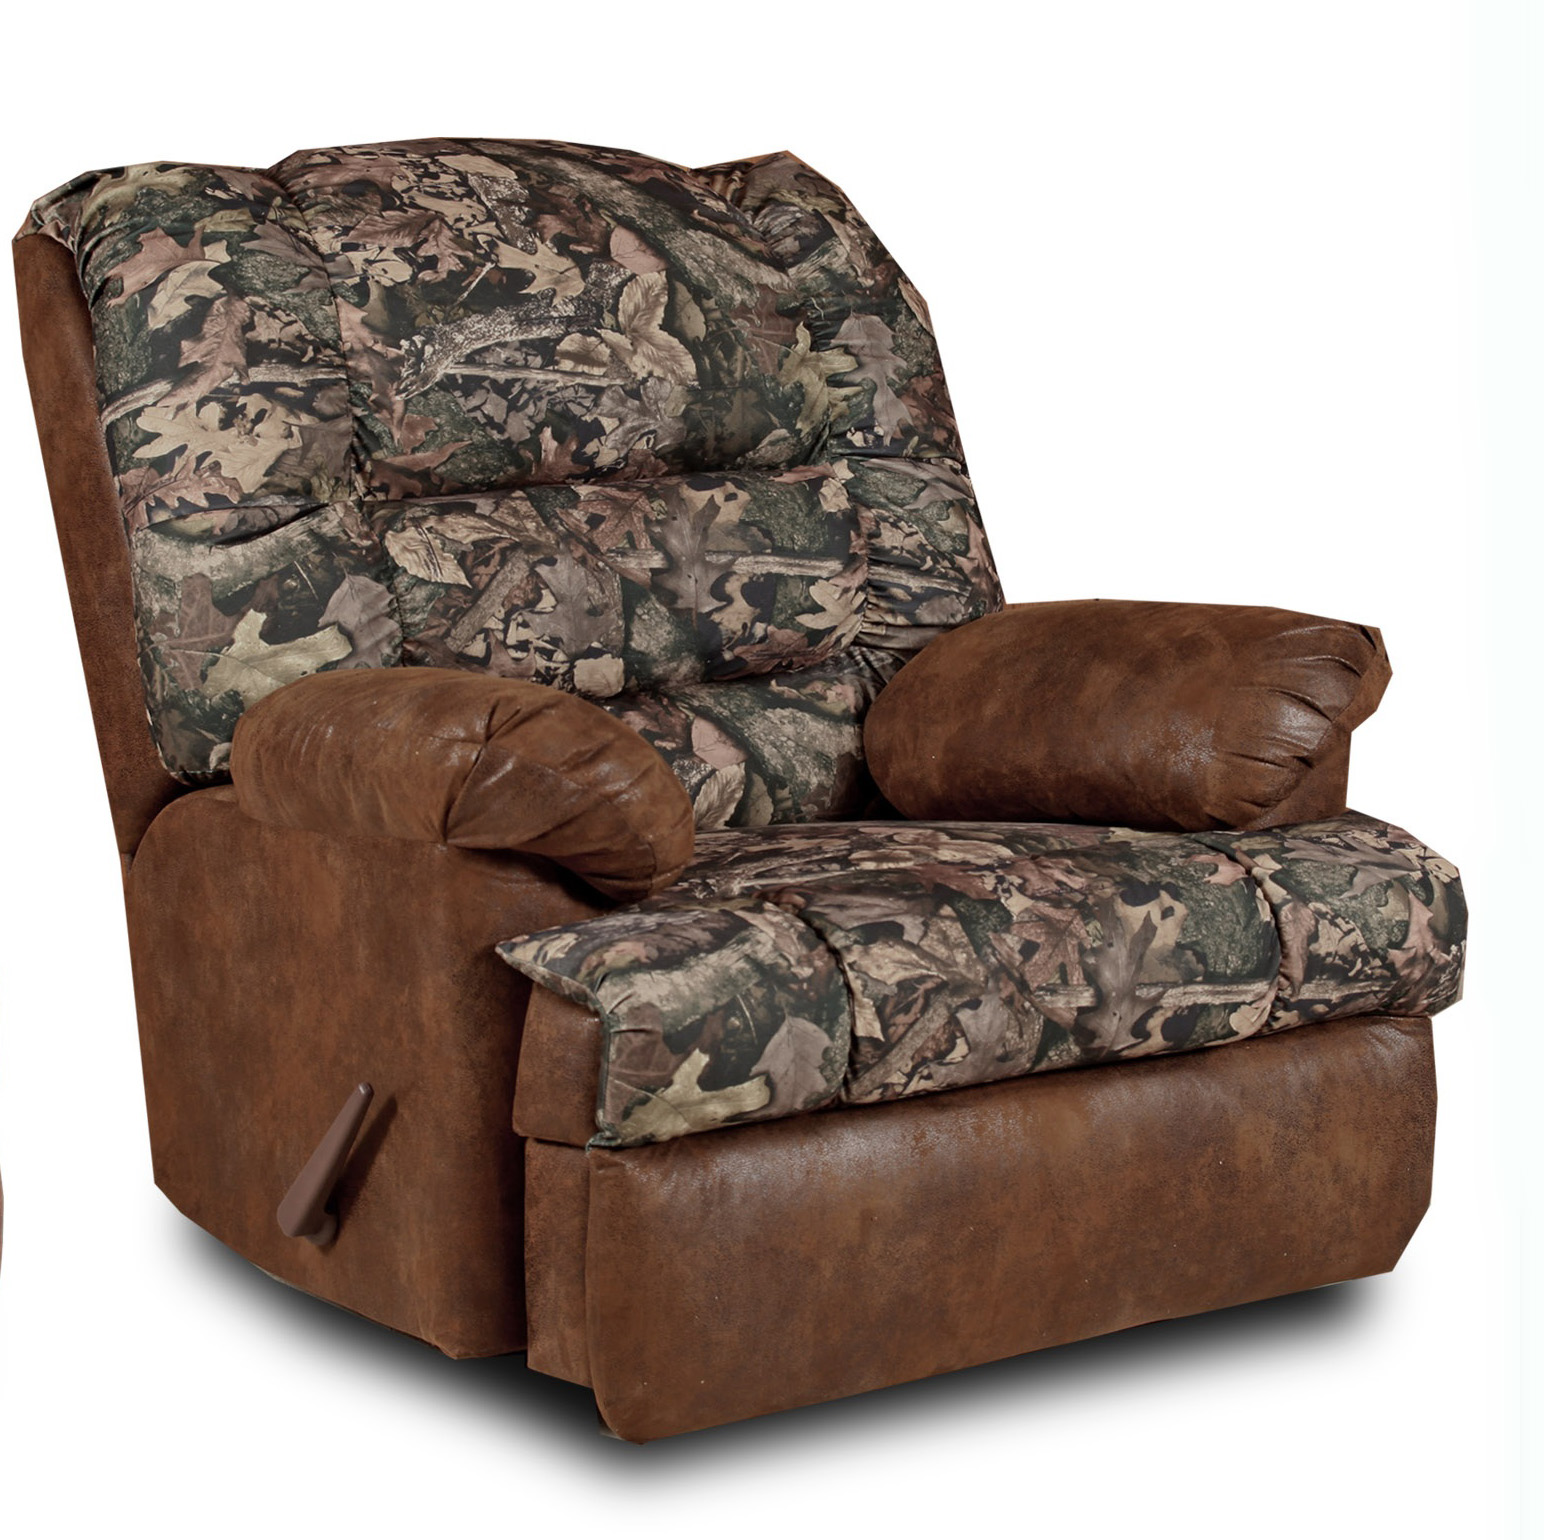 Americanaidolateachesaaboutasocialamedia additionally Chesterfield White Leather Sofa besides French Style Home Office besides Duck  mander Realtree Camo Fabric Recliner By Chelsea Home 20r26dc M4t 5352 in addition Vintage Bookcase. on chelsea desk chair fabric